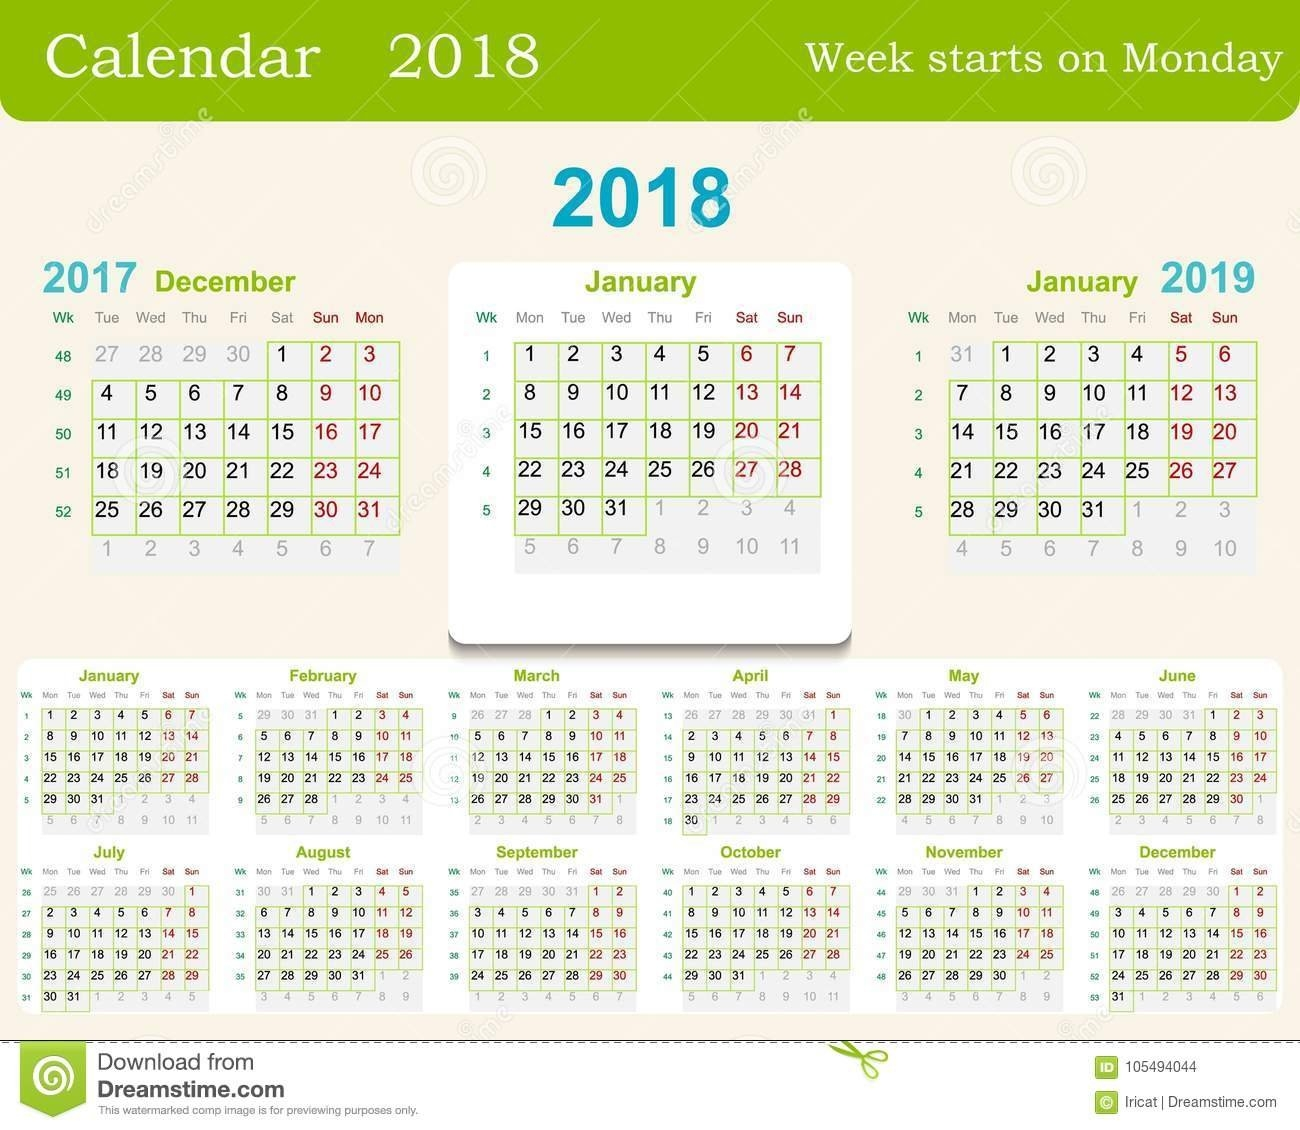 Calendar Grid For 2018 Week Starts From Monday And From December Of Calendar Week 35 2019